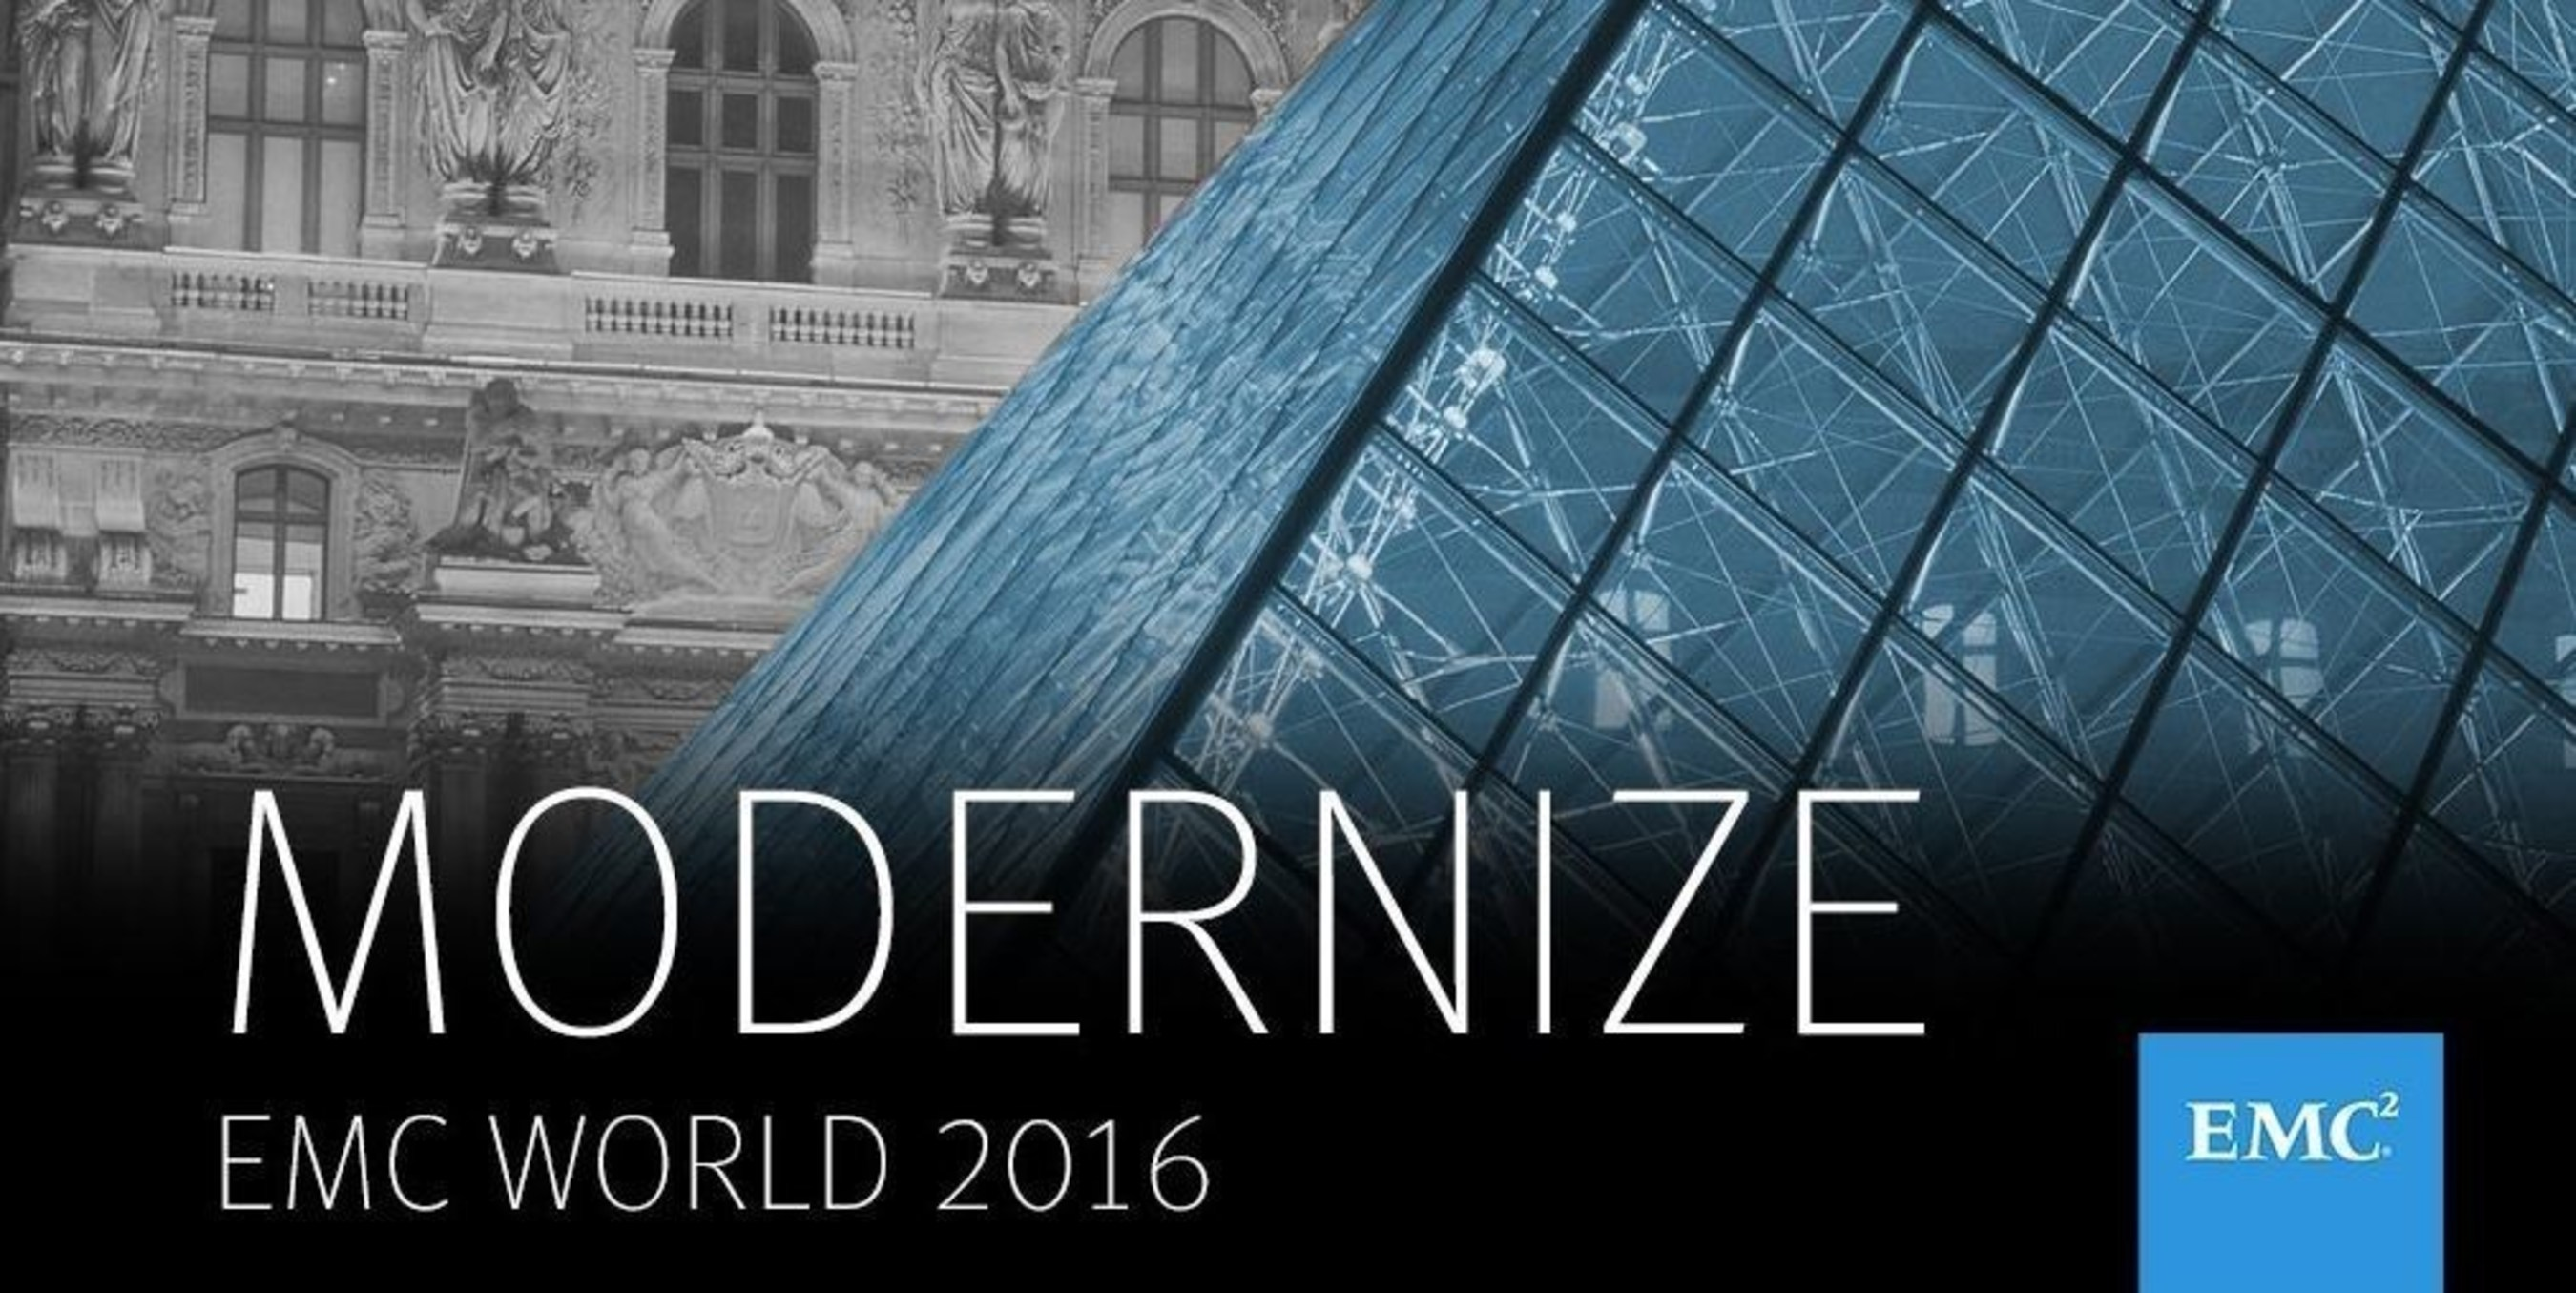 EMC World Day 1 - EMC Launches Wave of New Technology to Modernize Data Centers